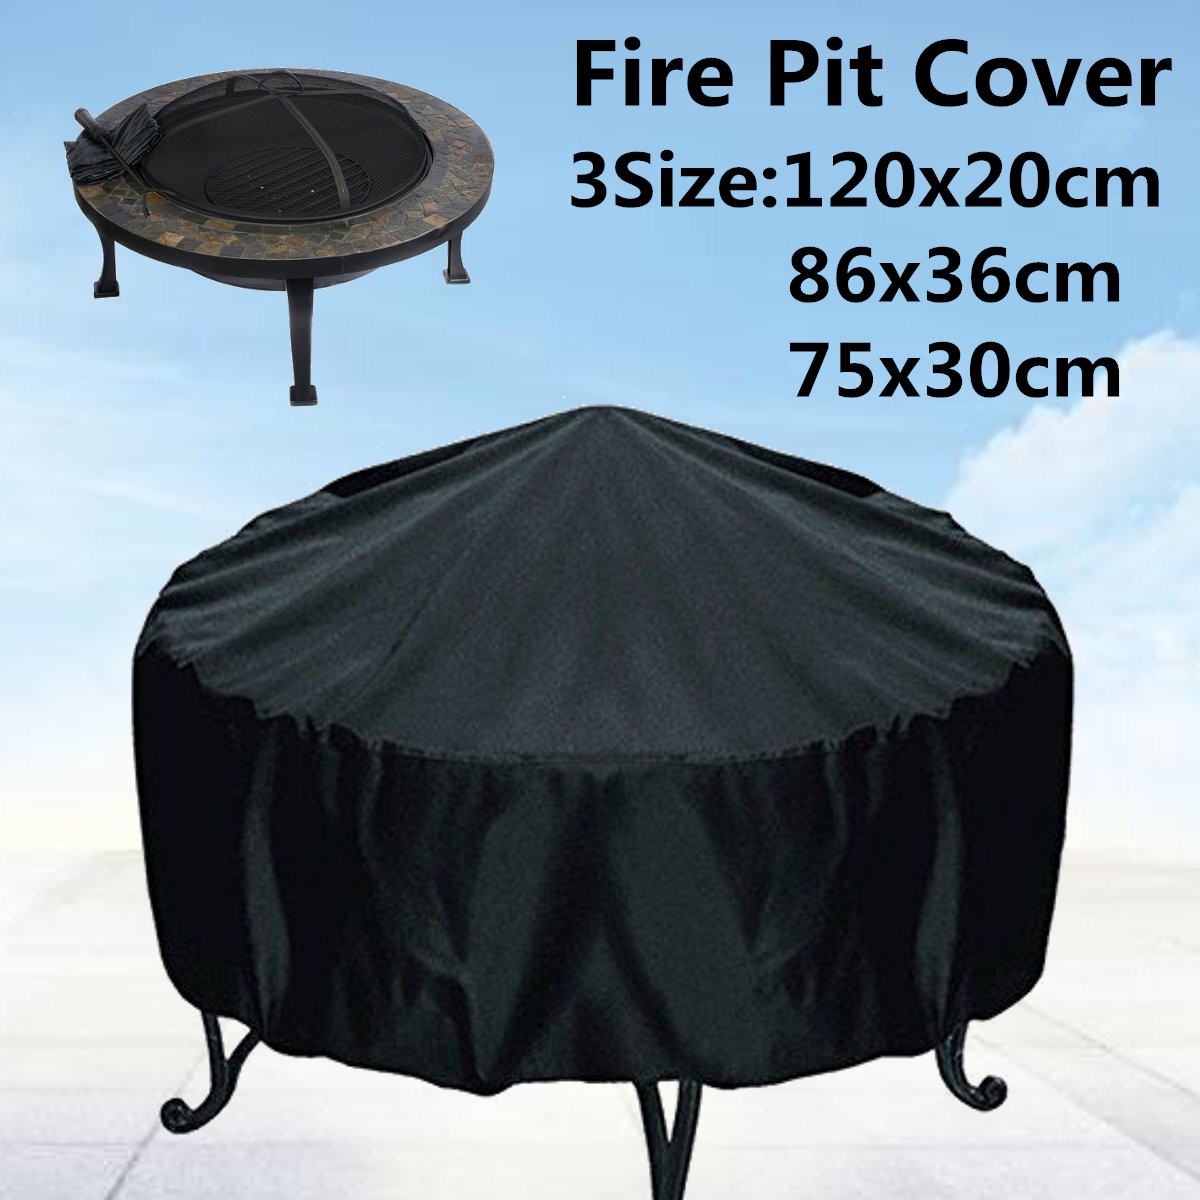 3 Sizes Waterproof Patio Fire Pit Cover Black UV Protector Grill BBQ Shelter Outdoor Garden Yard Round Canopy Furniture Covers